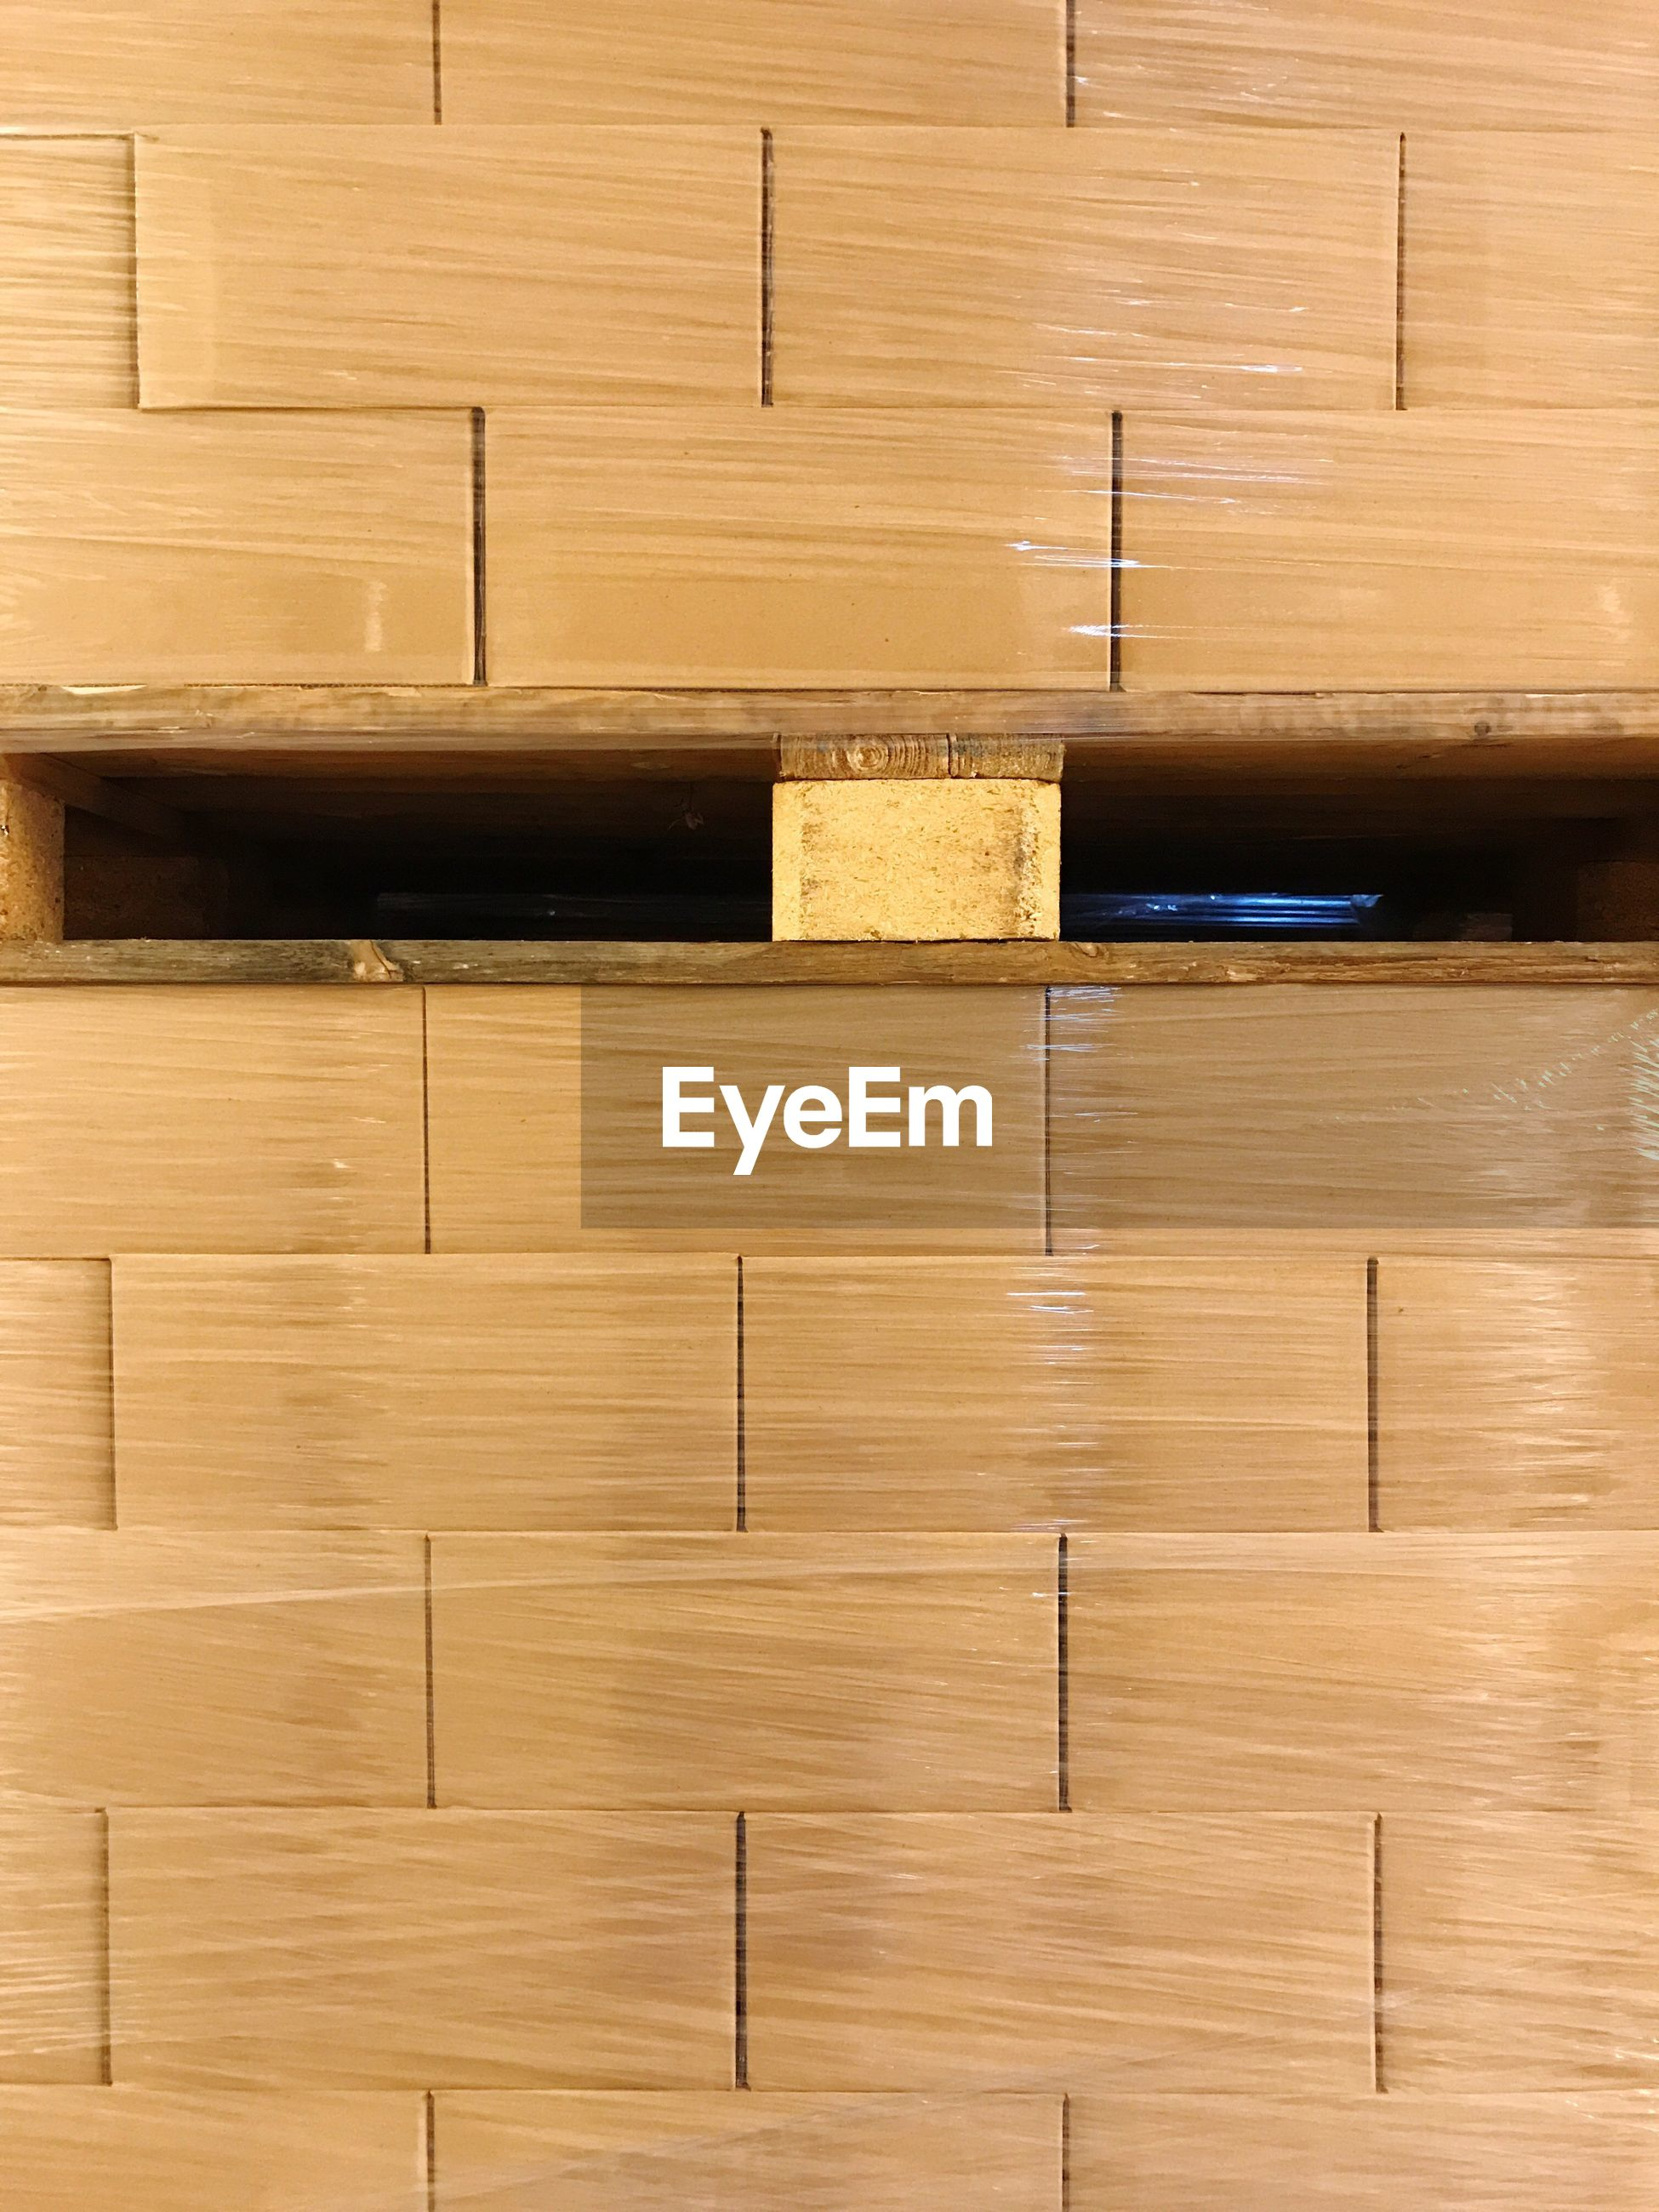 Boxes stacked at storage compartment